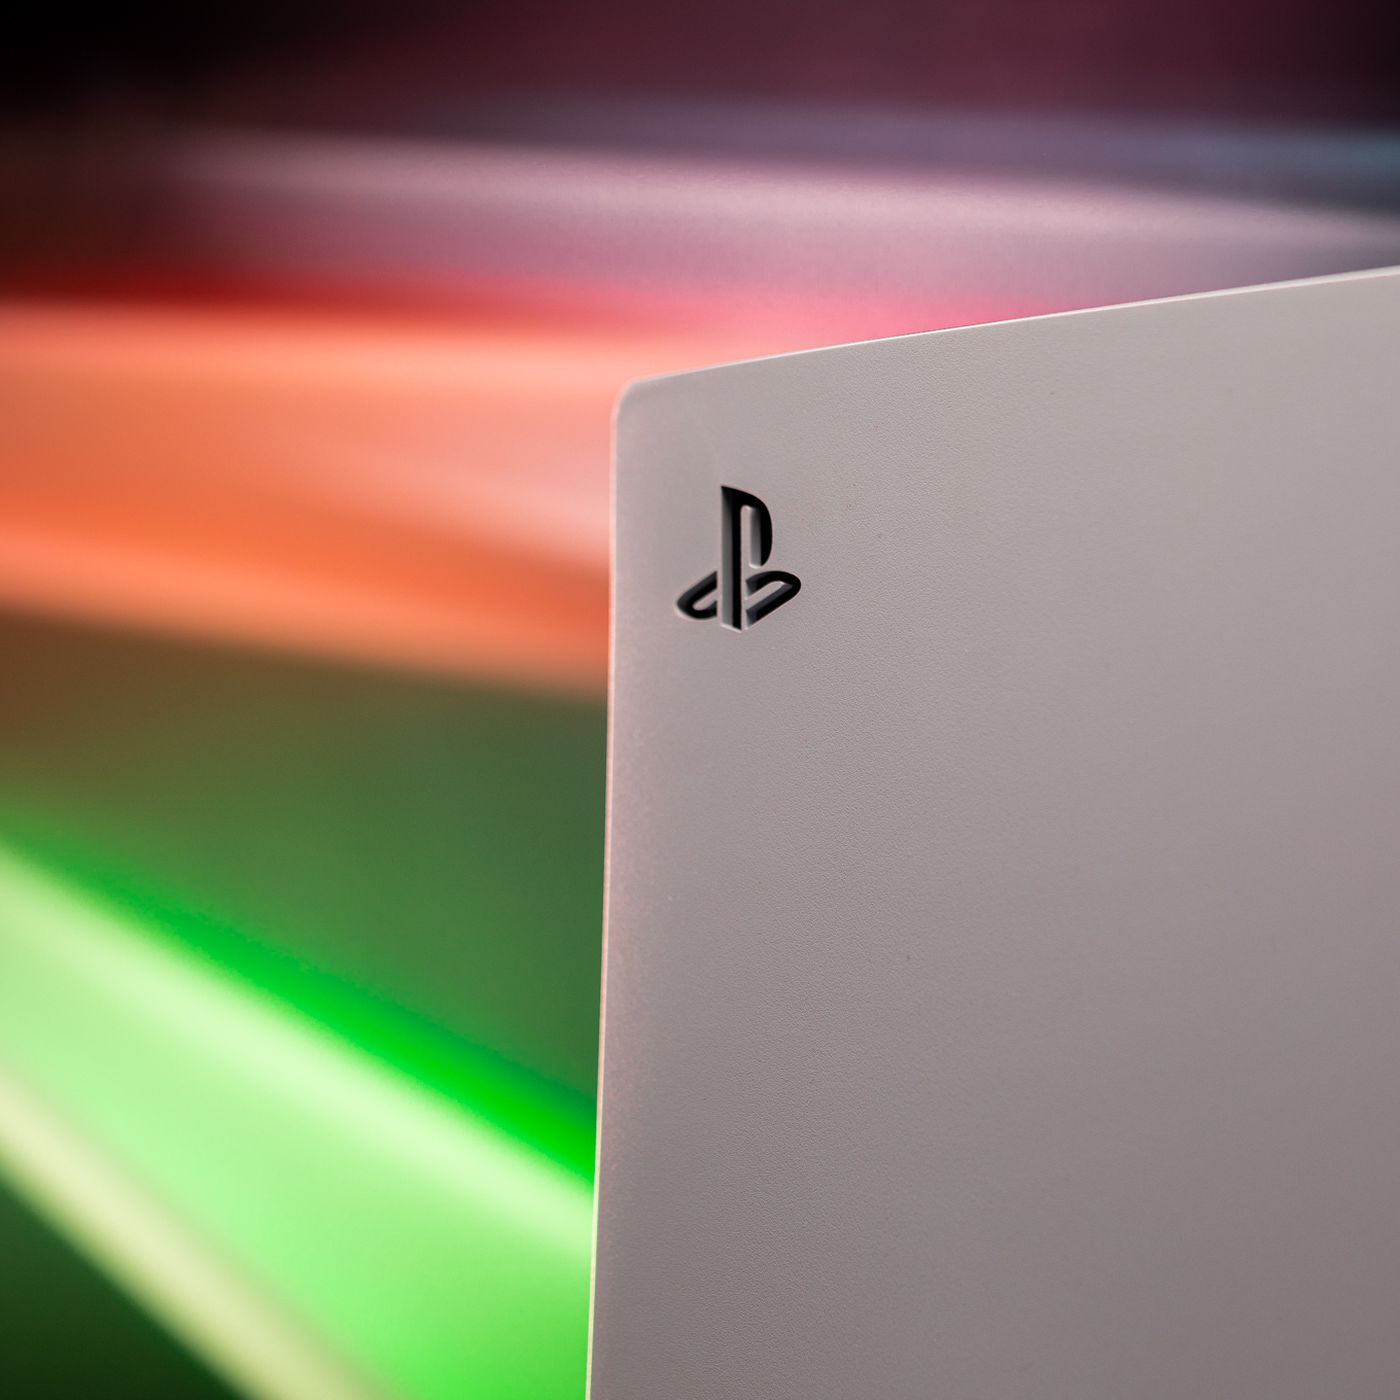 Sony Sold 4 5 Million Playstation 5 Consoles Last Year The Verge